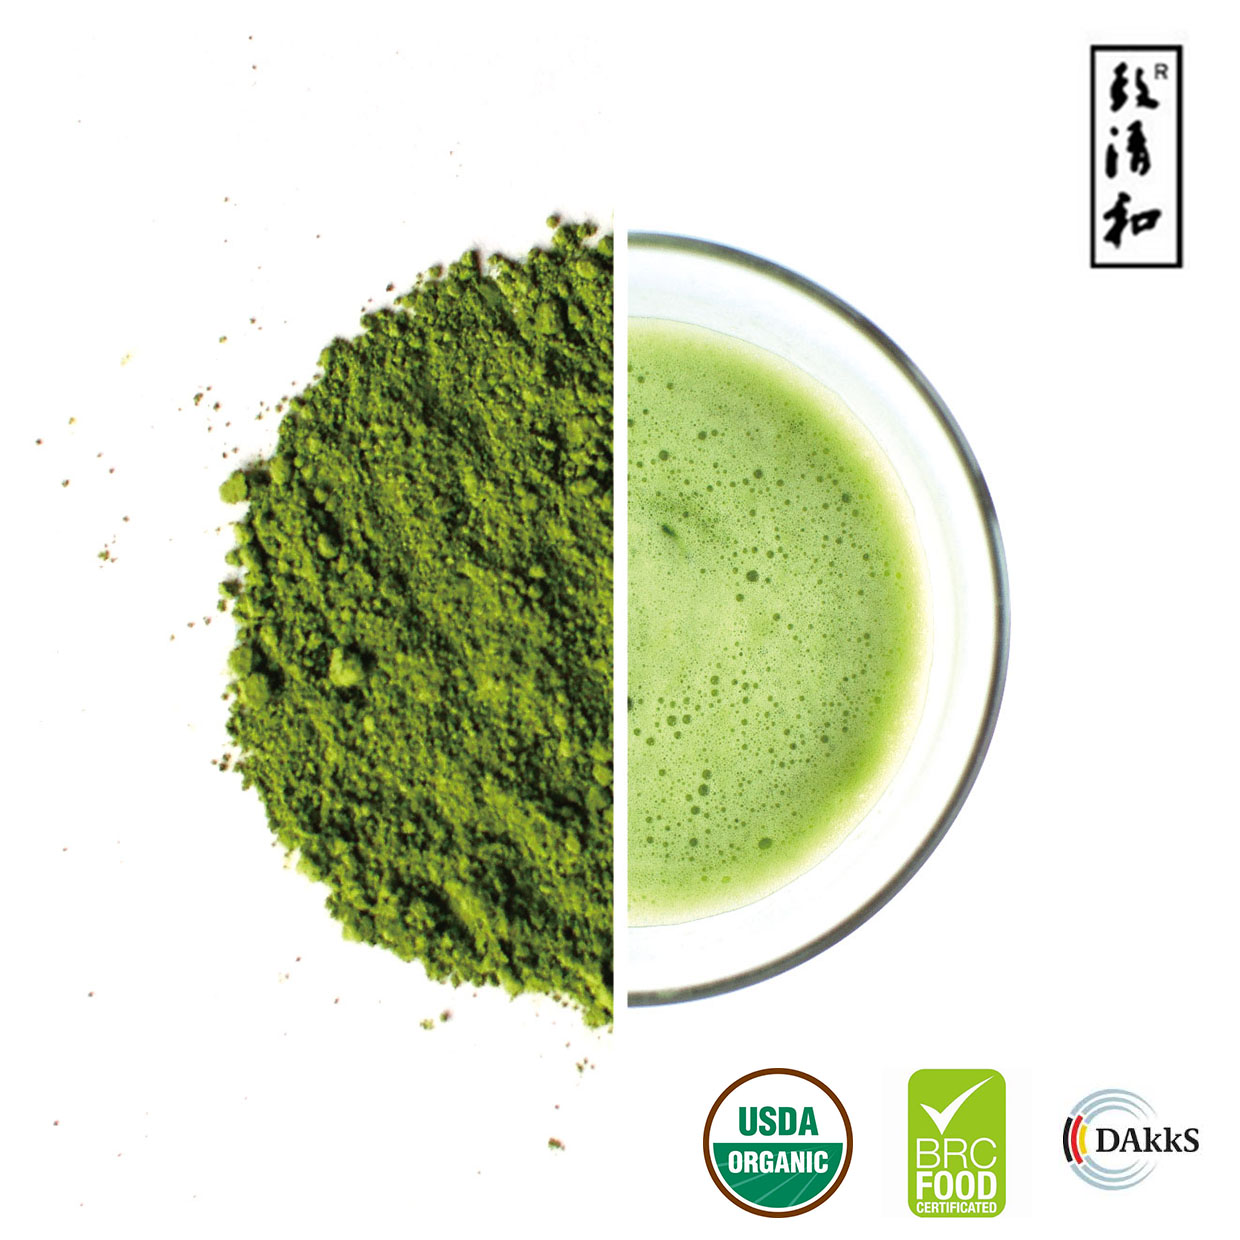 Superior USDA BRC DAKKS Organic Matcha Private Label